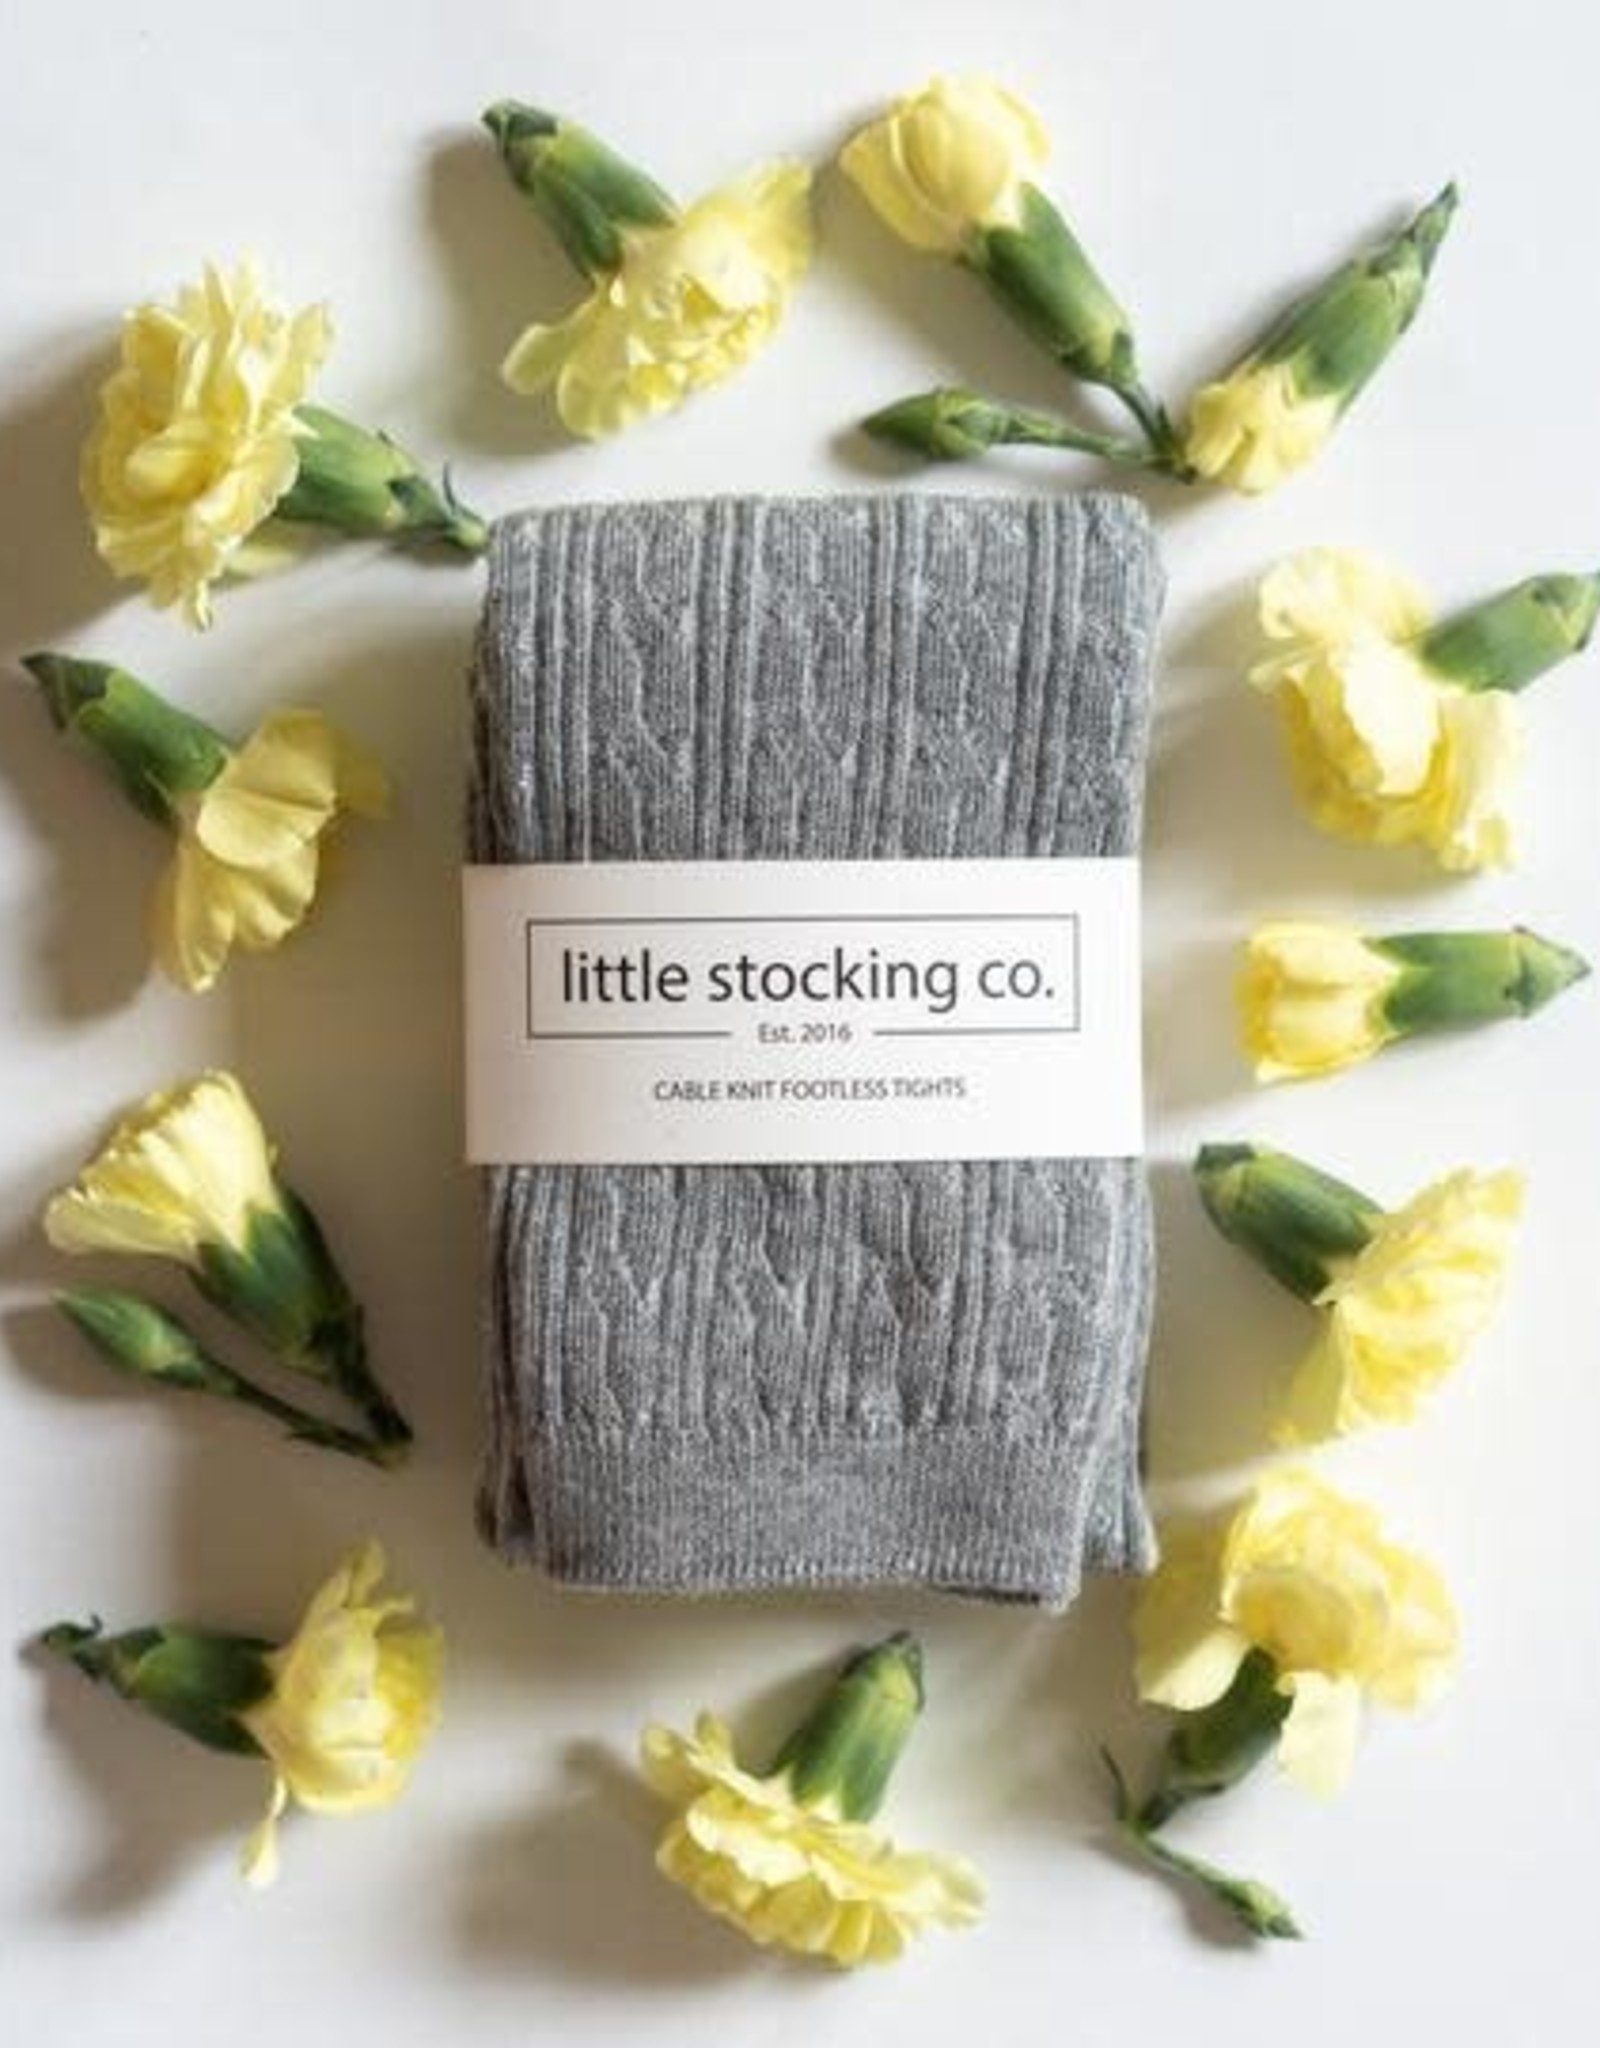 Little Stocking Co Footless Tights